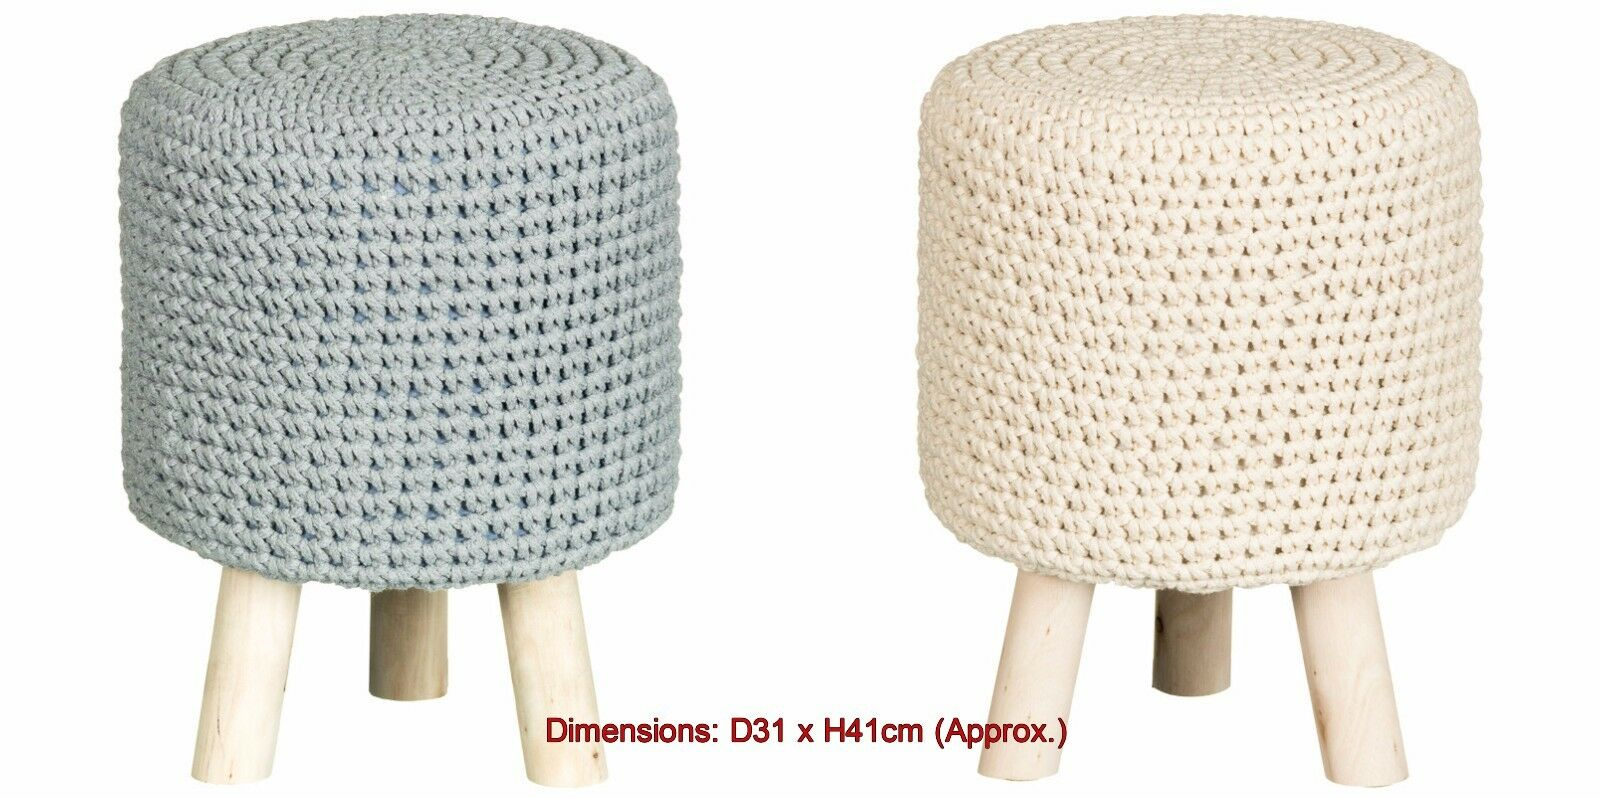 Vintage Stylish and practical Knitted Footstool home decor - grau & Cream Colour